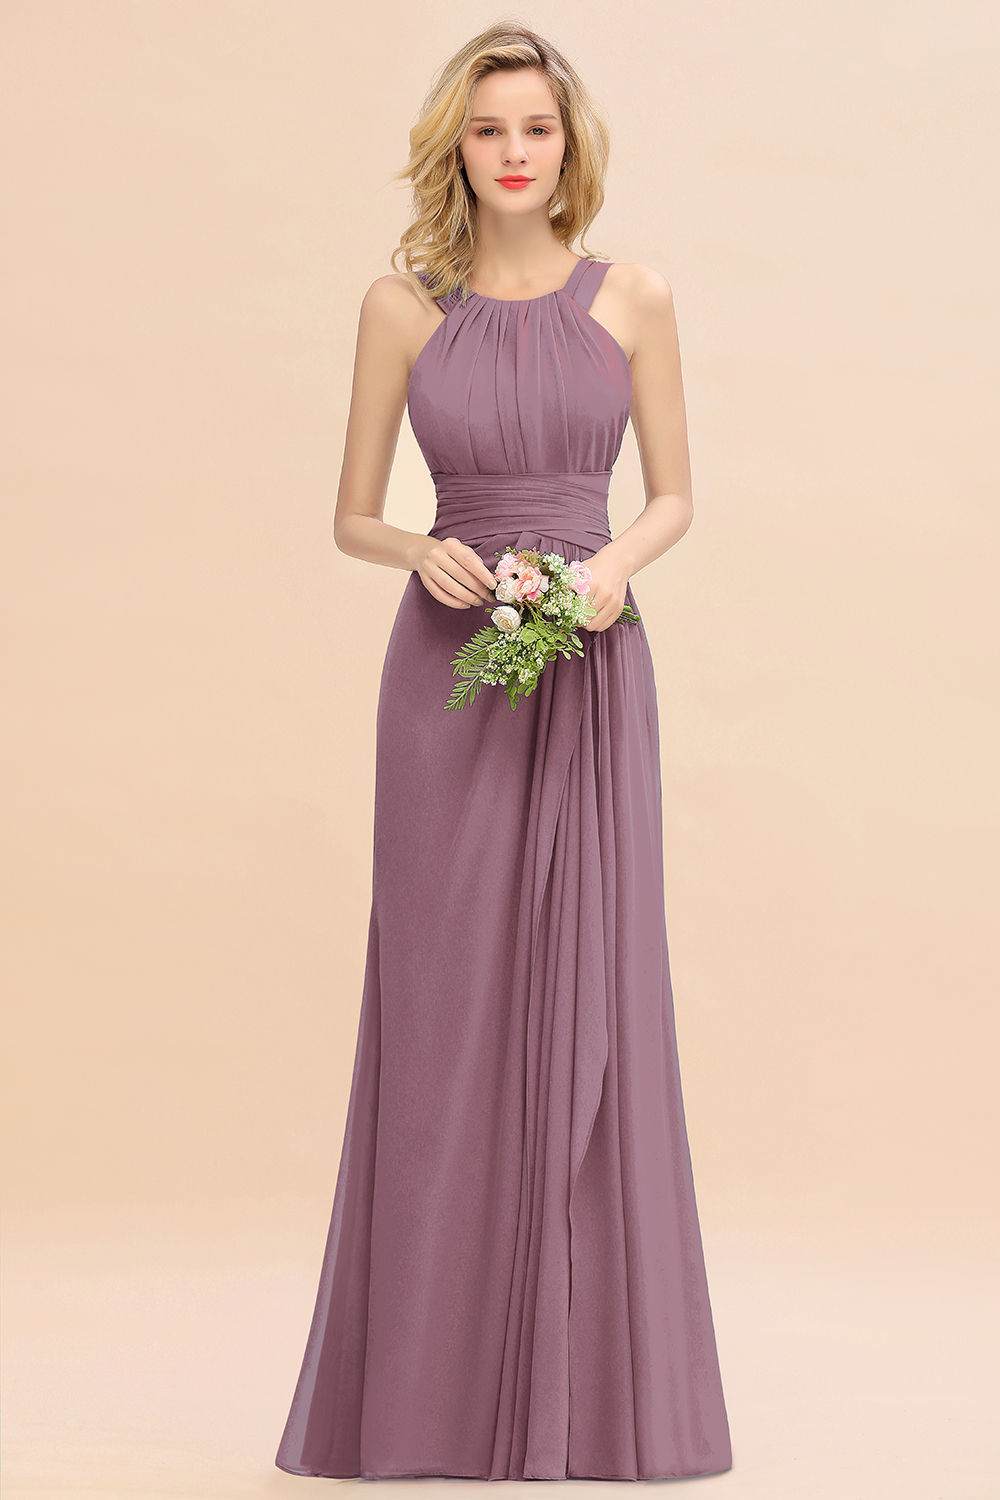 wisteria bridesmaid dress